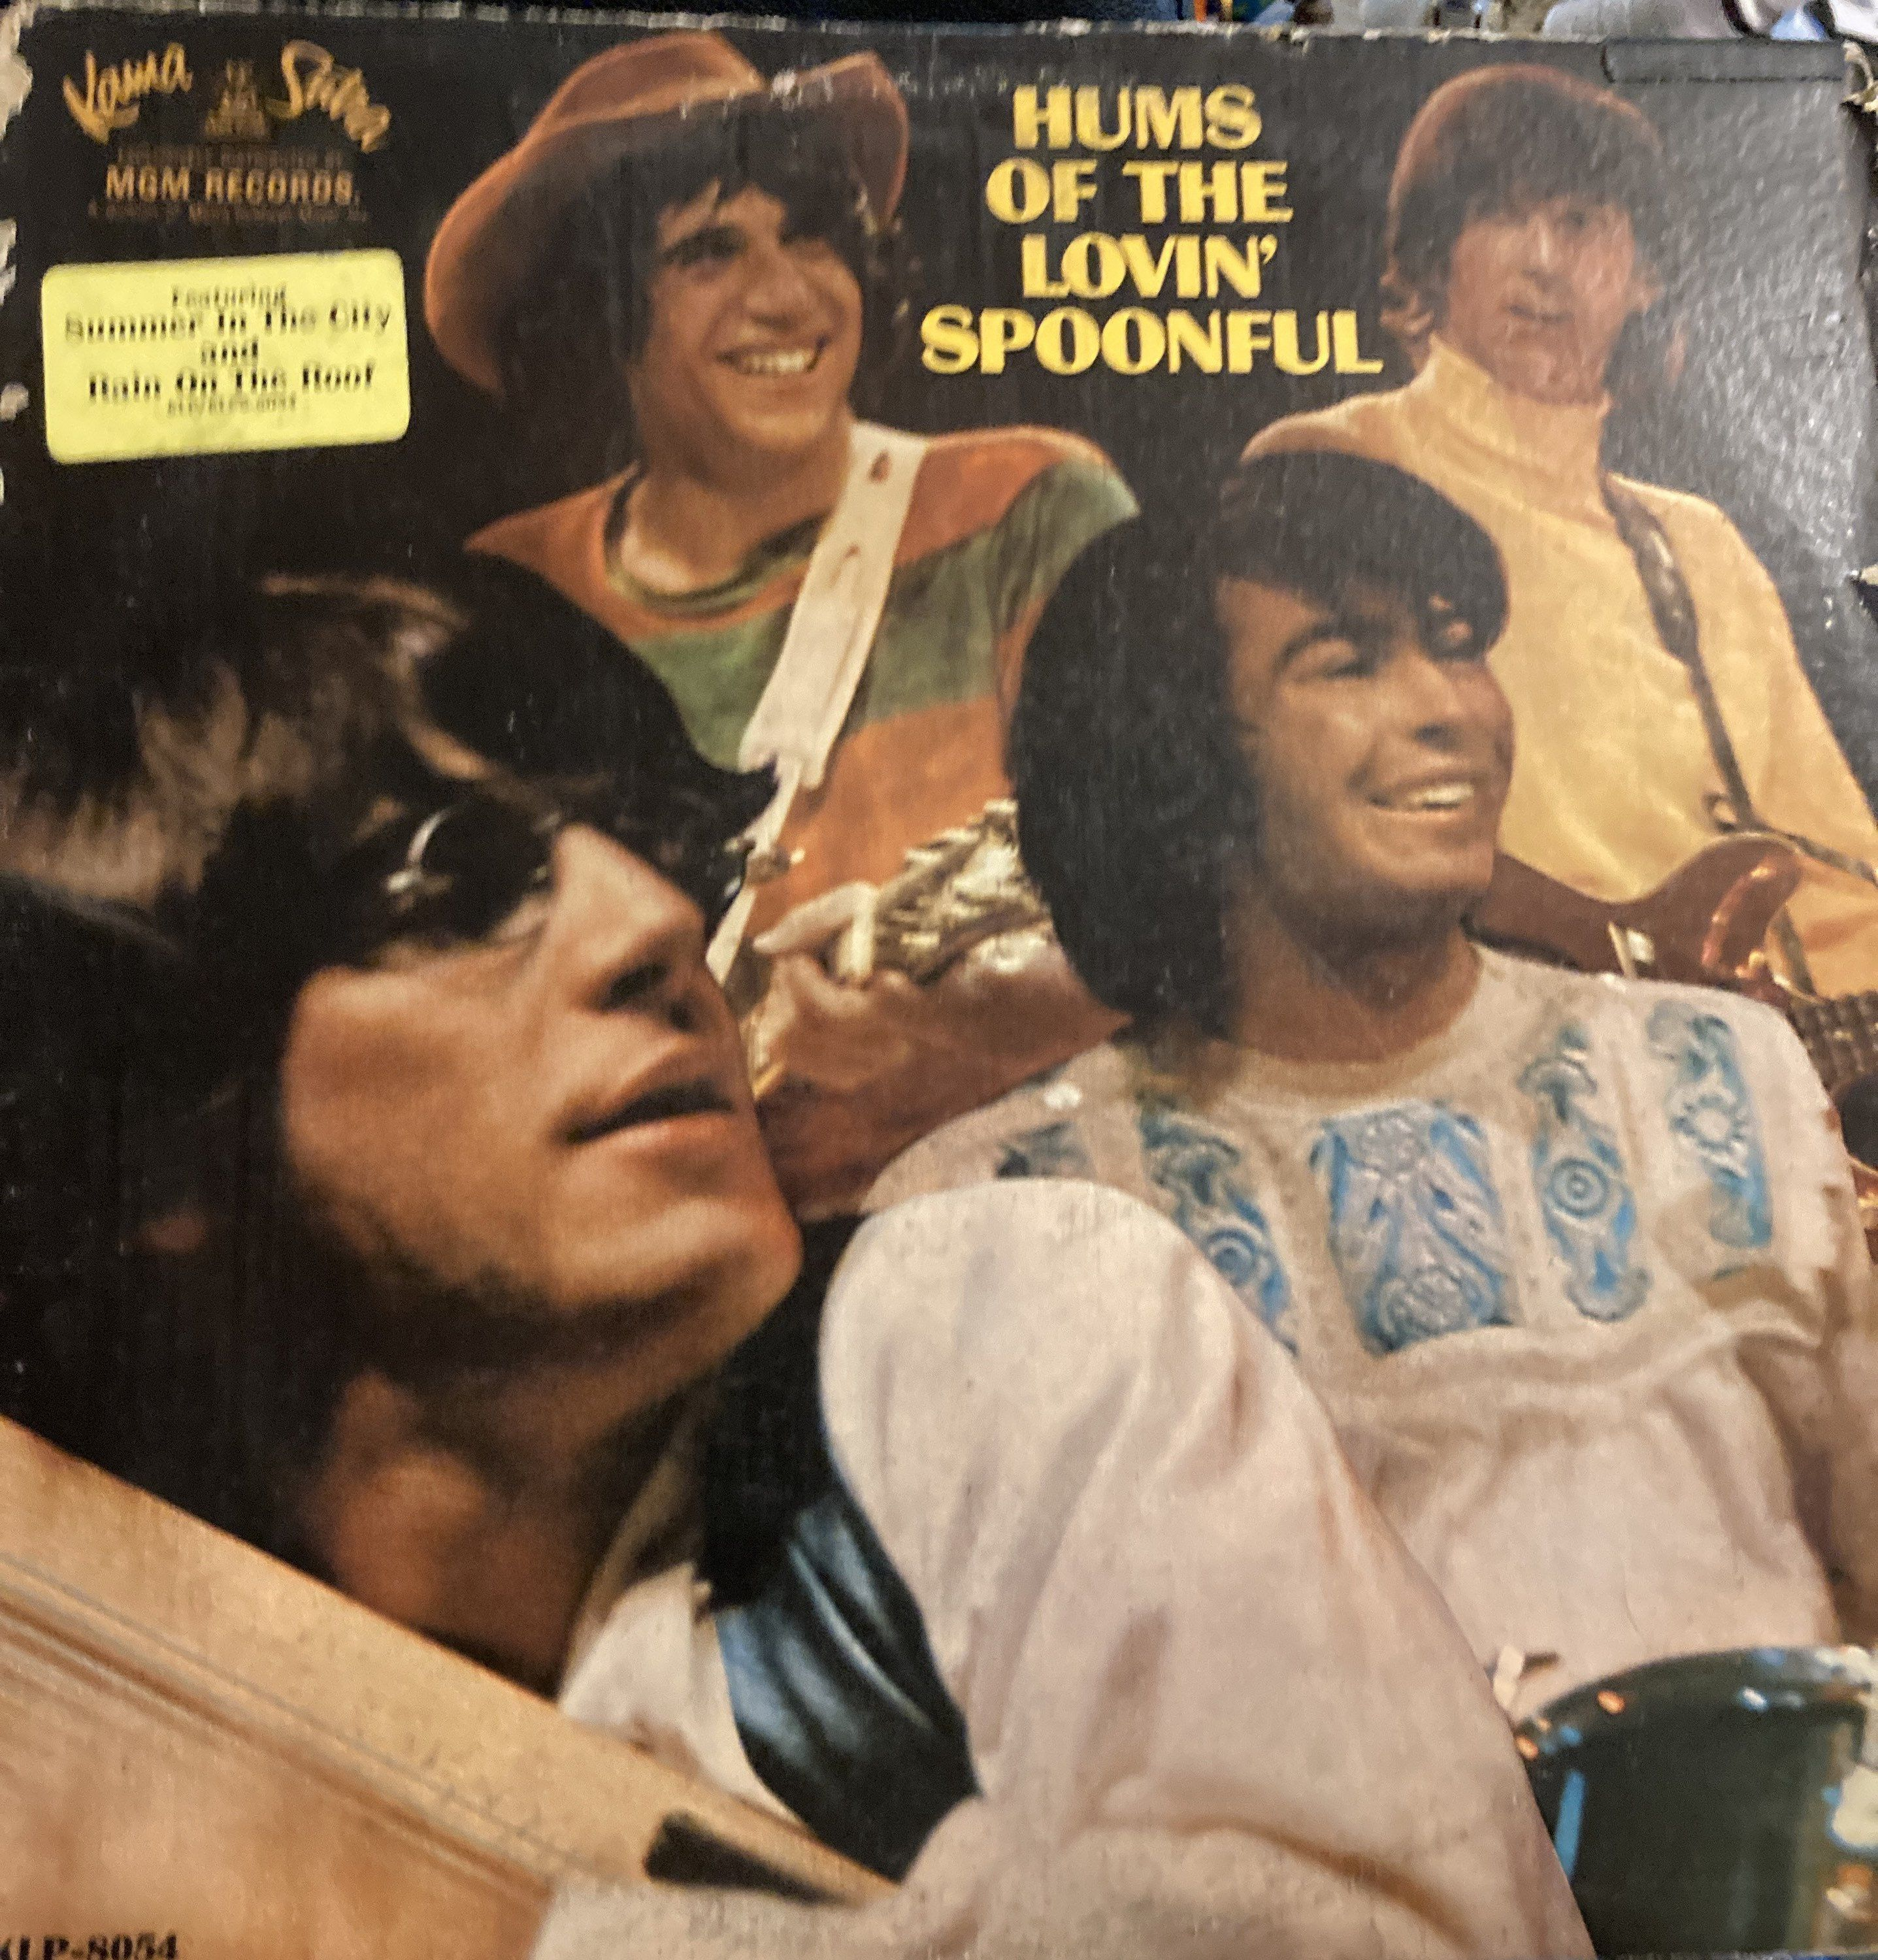 The Lovin Spoonful Hums Of The Lovin Etsy In 2020 The Lovin Spoonful Album Sleeves Music Albums